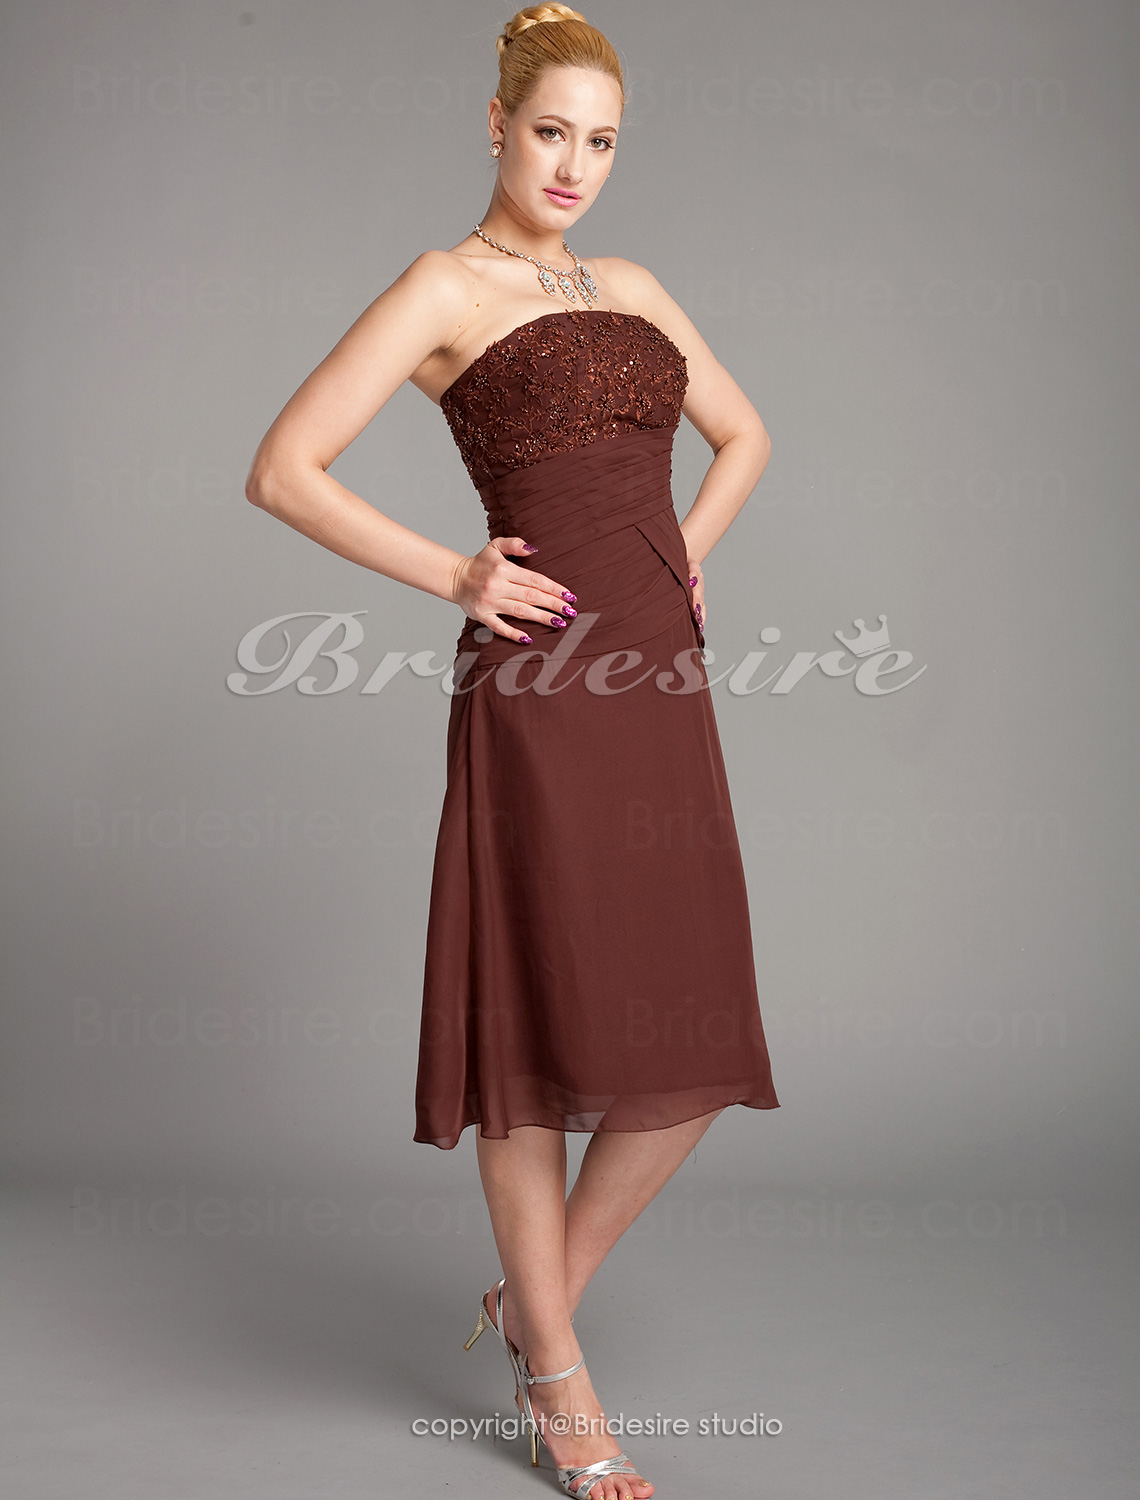 Sheath/Column Chiffon Tea-length Spaghetti Straps Bridesmaid Dress With Embroidery